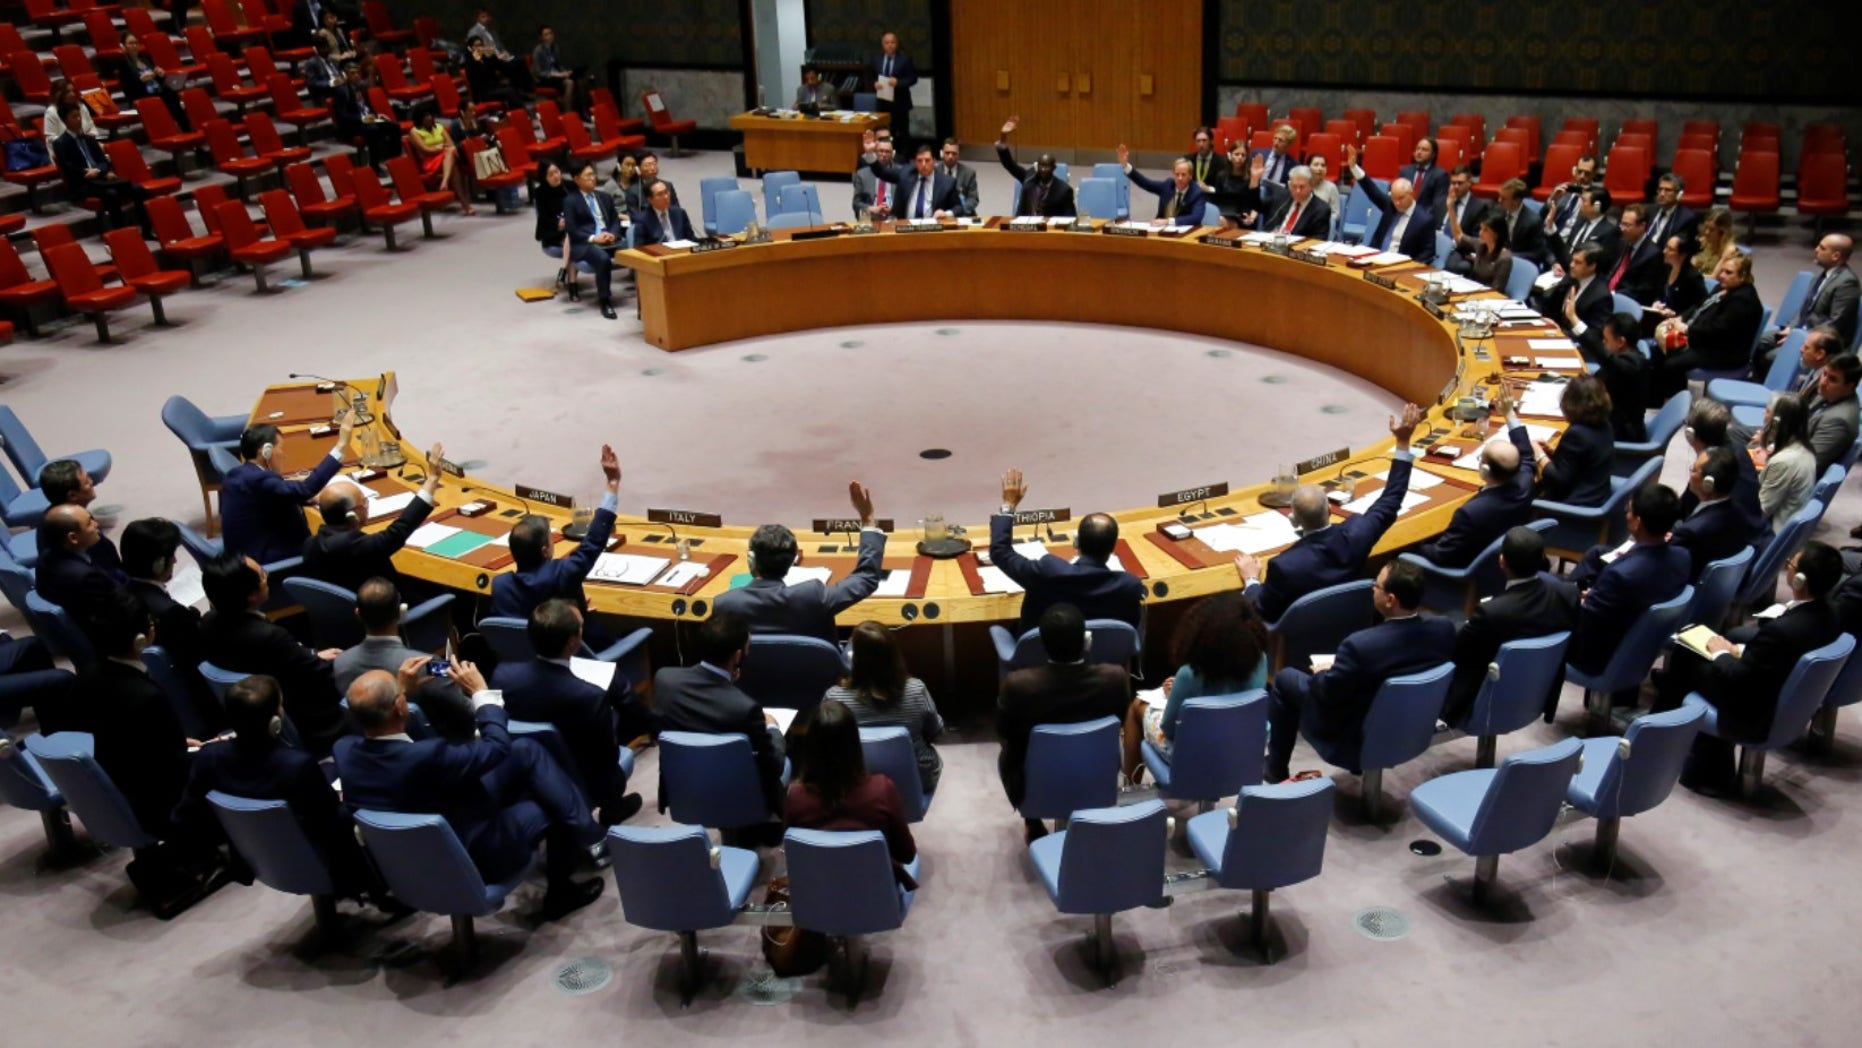 Ambassadors to the United Nations raise hands in a U.N. Security Council resolution vote to sanction North Korea, Friday, June 2, 2017, at U.N. headquarters. (AP Photo/Bebeto Matthews)